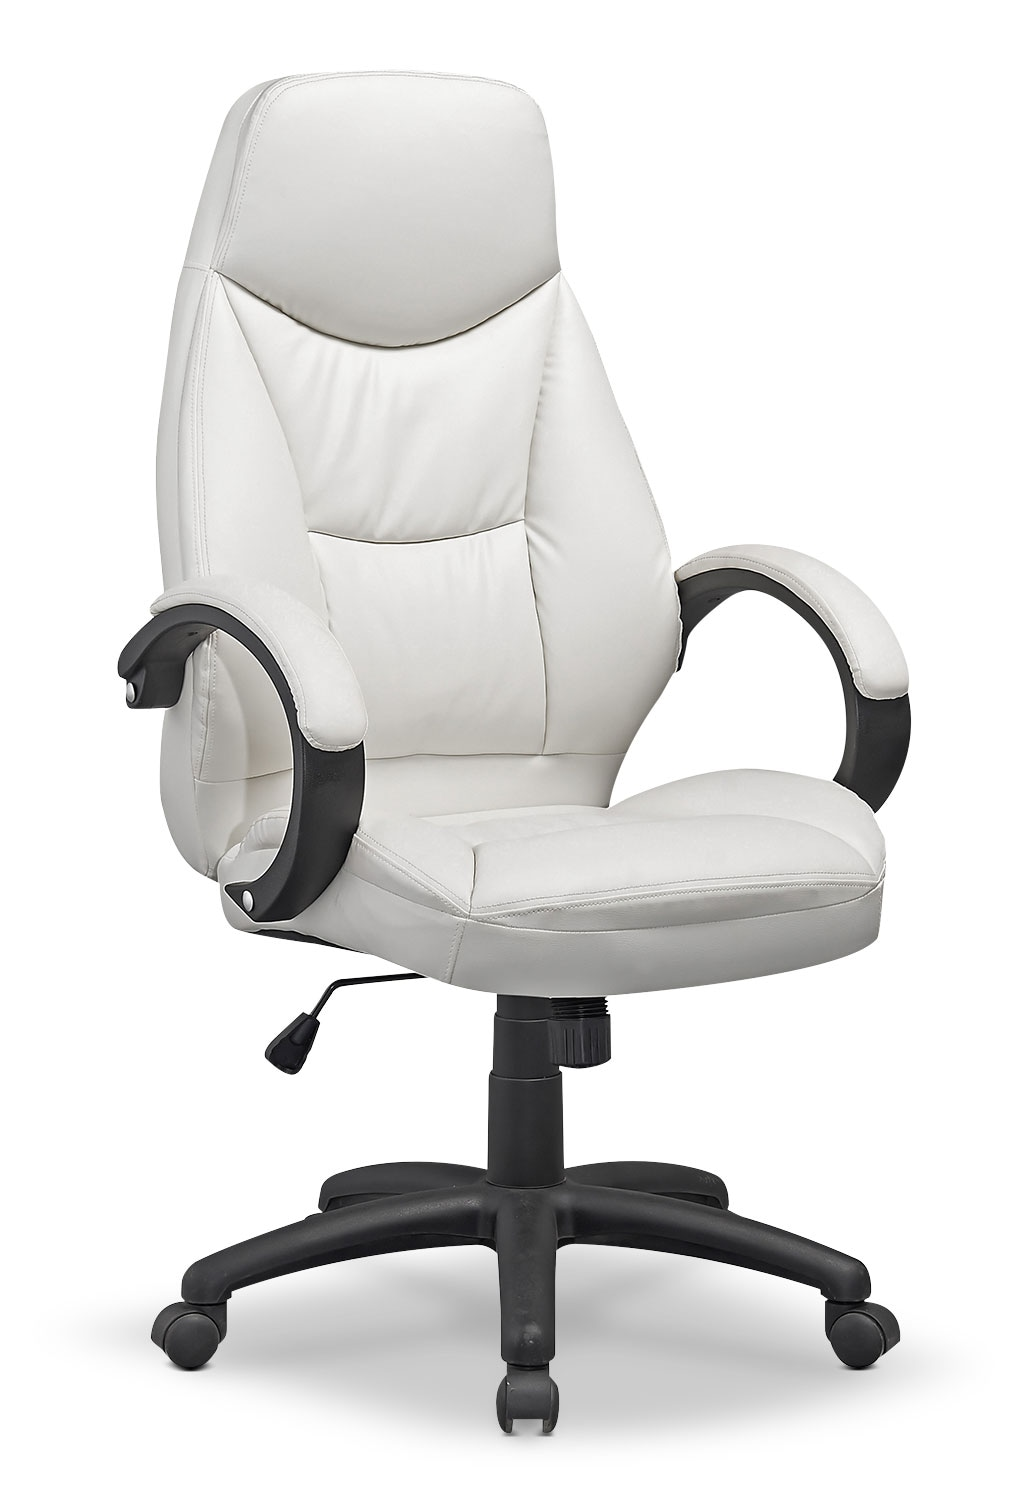 Home Office Furniture - Lancaster Lumbar Office Chair